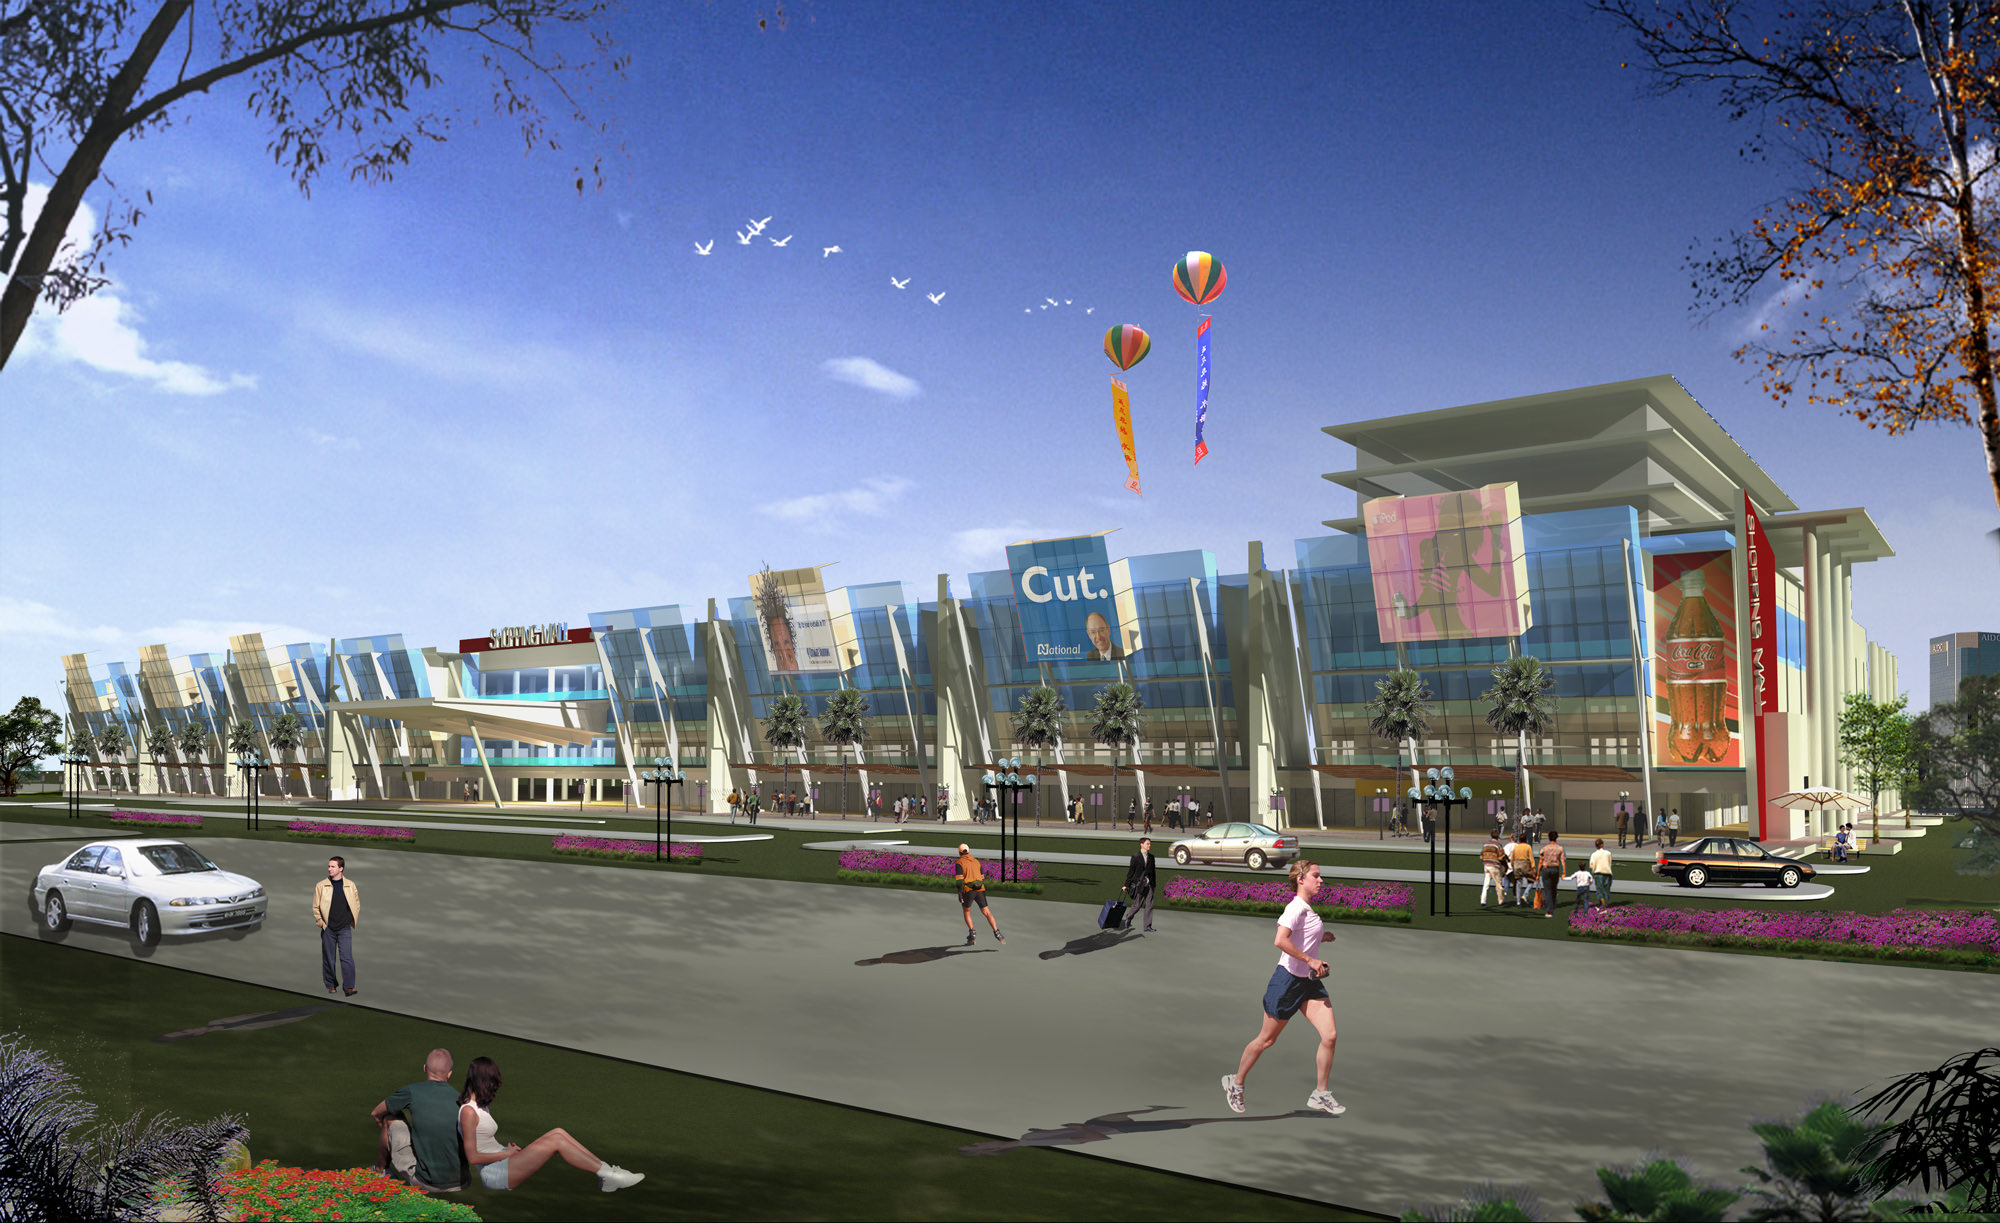 Proposed Shopping Mall Architectural Design